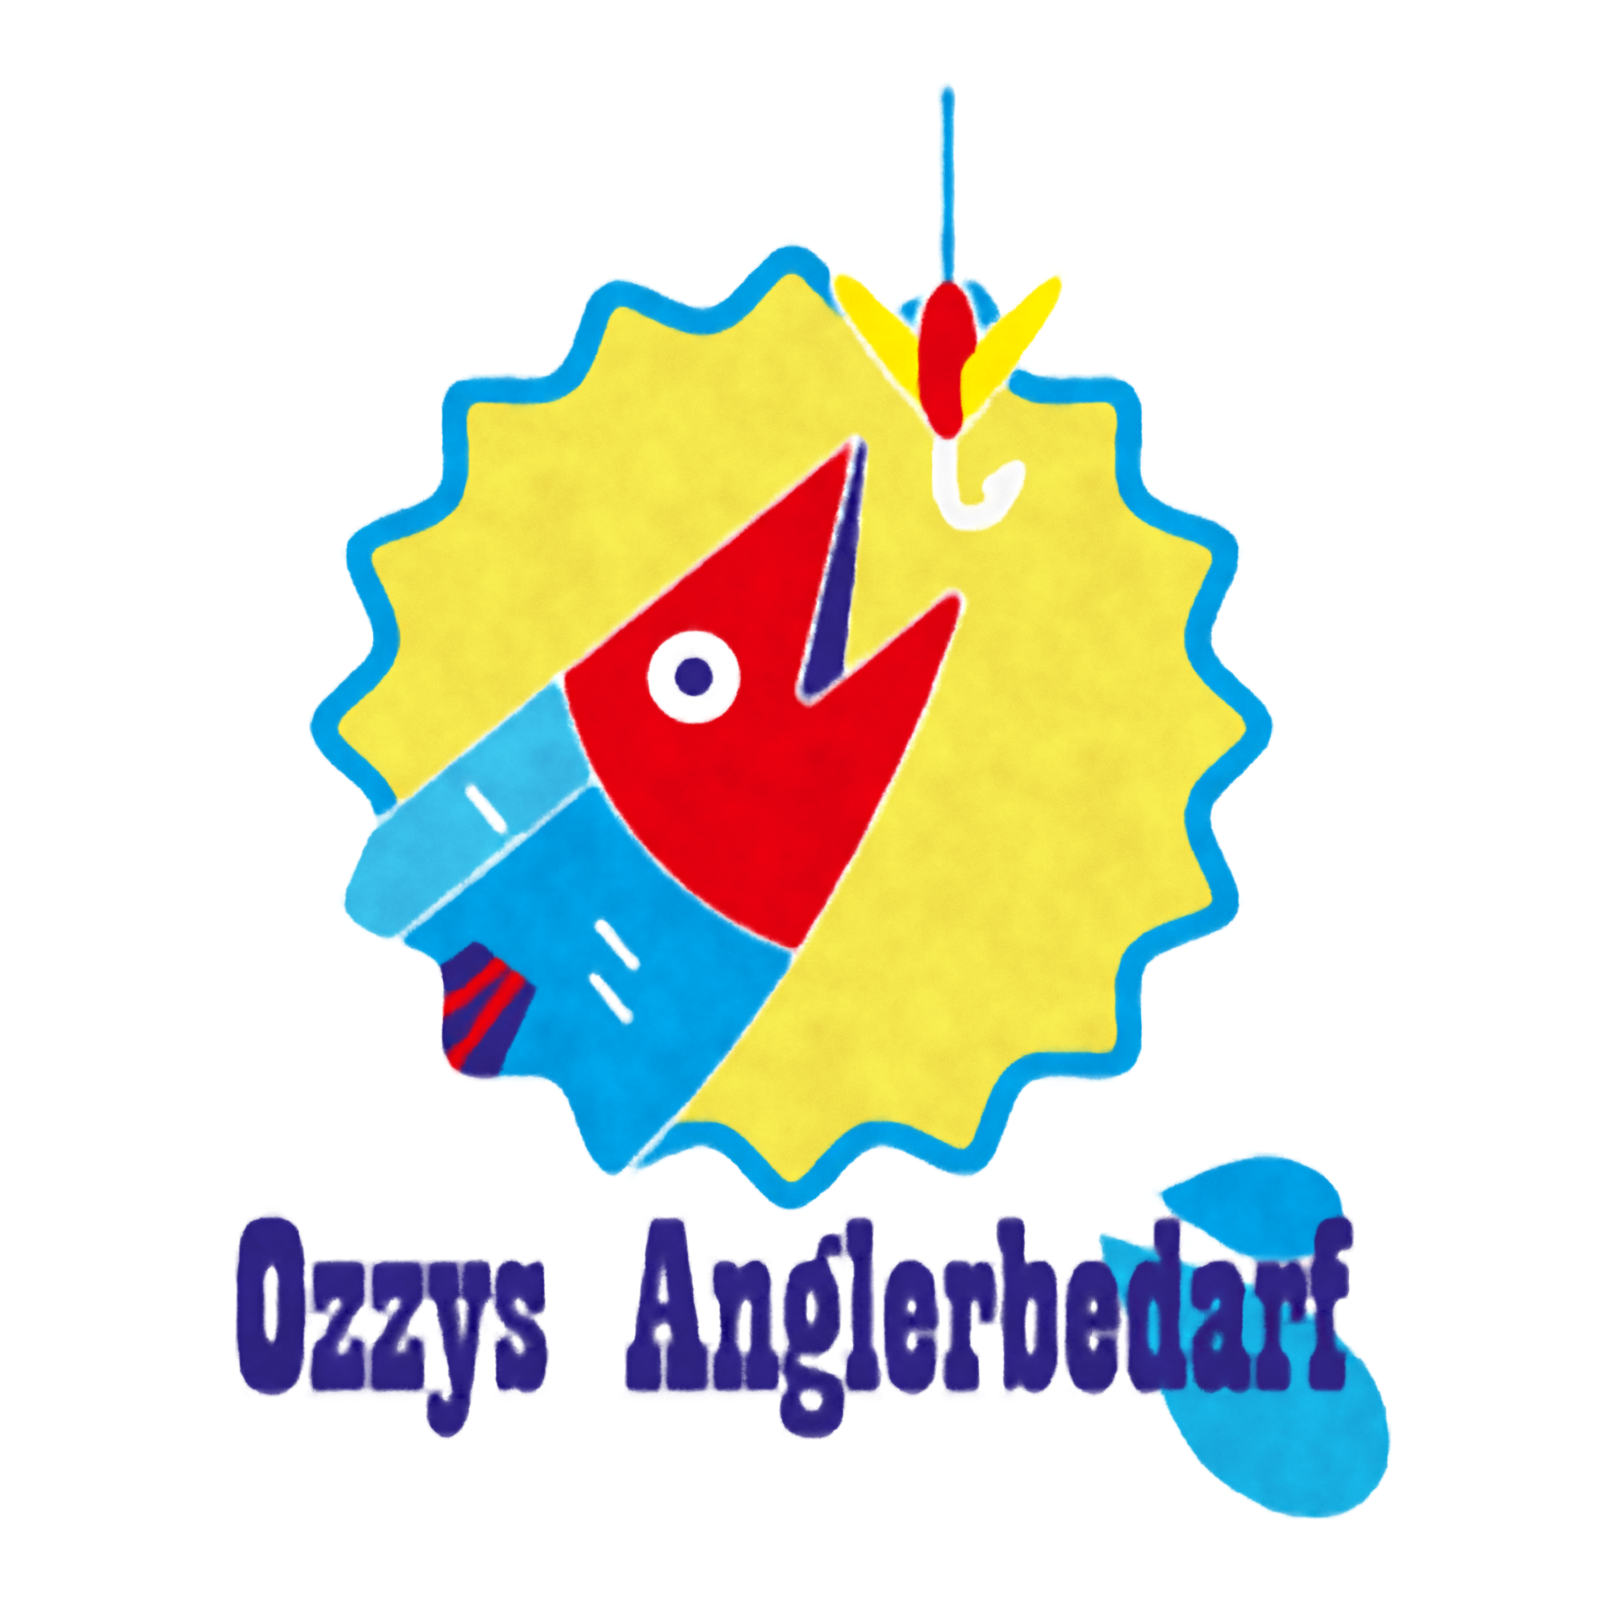 Logo Ozzys Anglerbedarf - SmillaEnlarger, sharp & noisy | BANNERKÖNIG